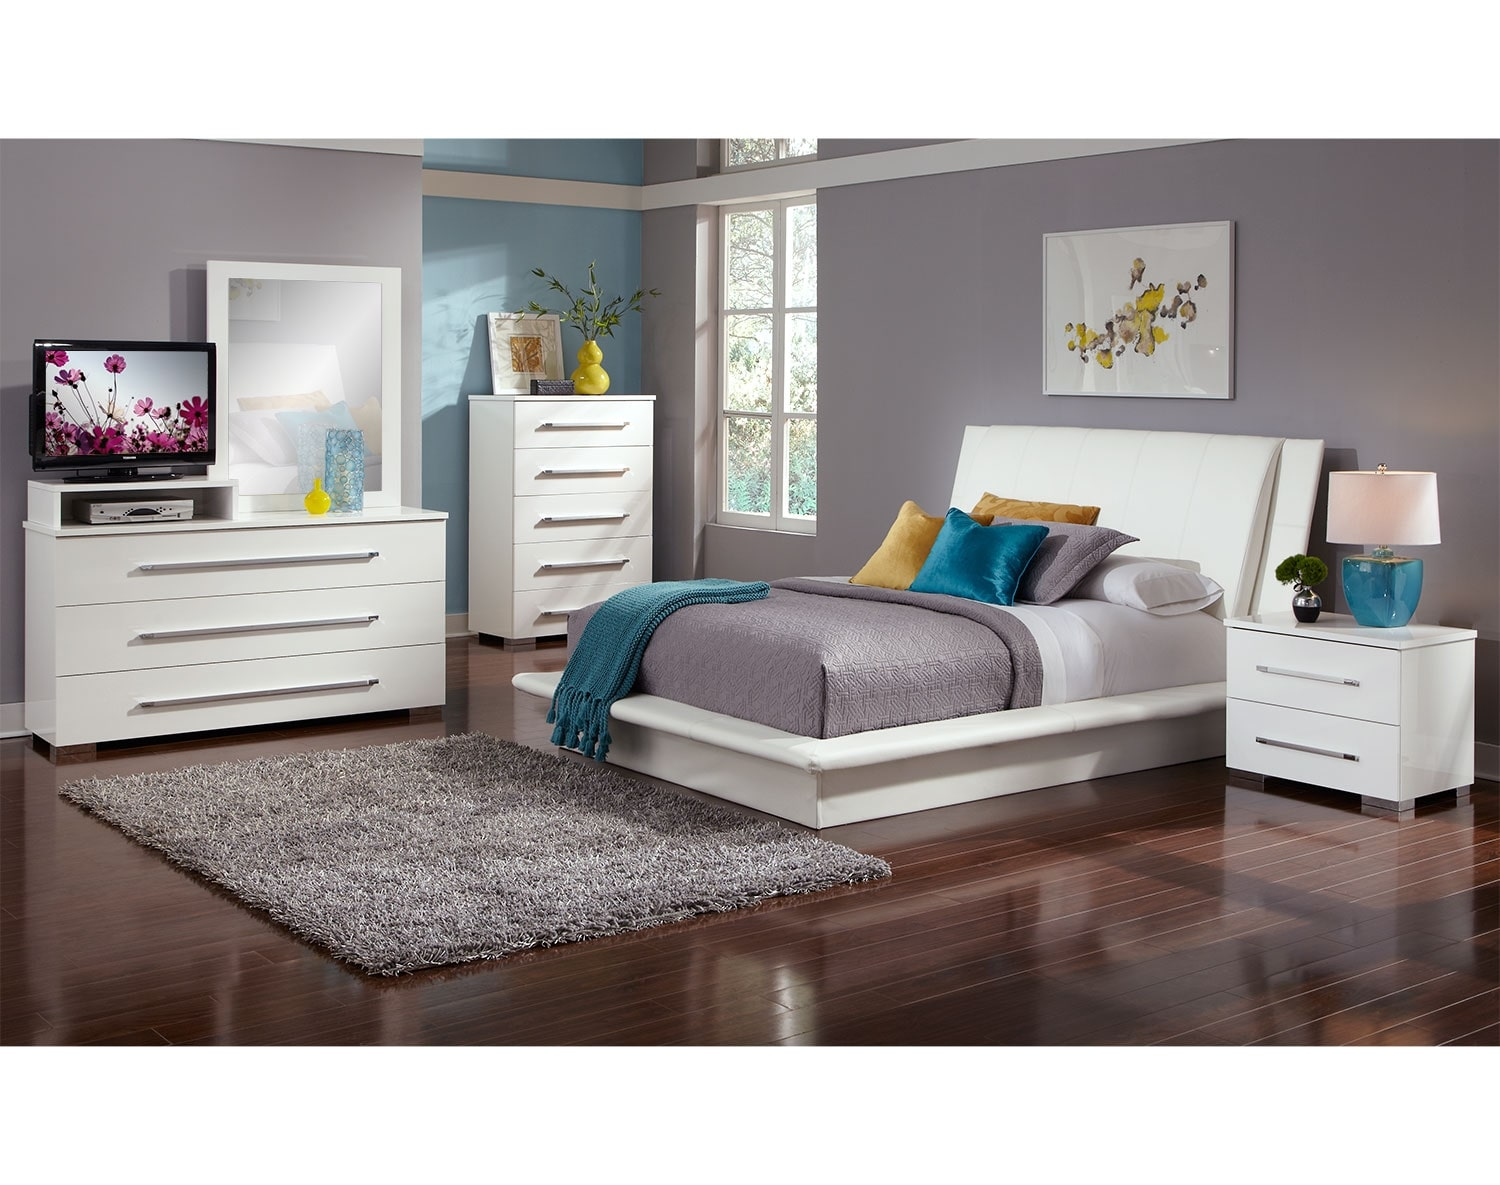 Bedroom Furniture - The Prima White Collection - Queen Bed